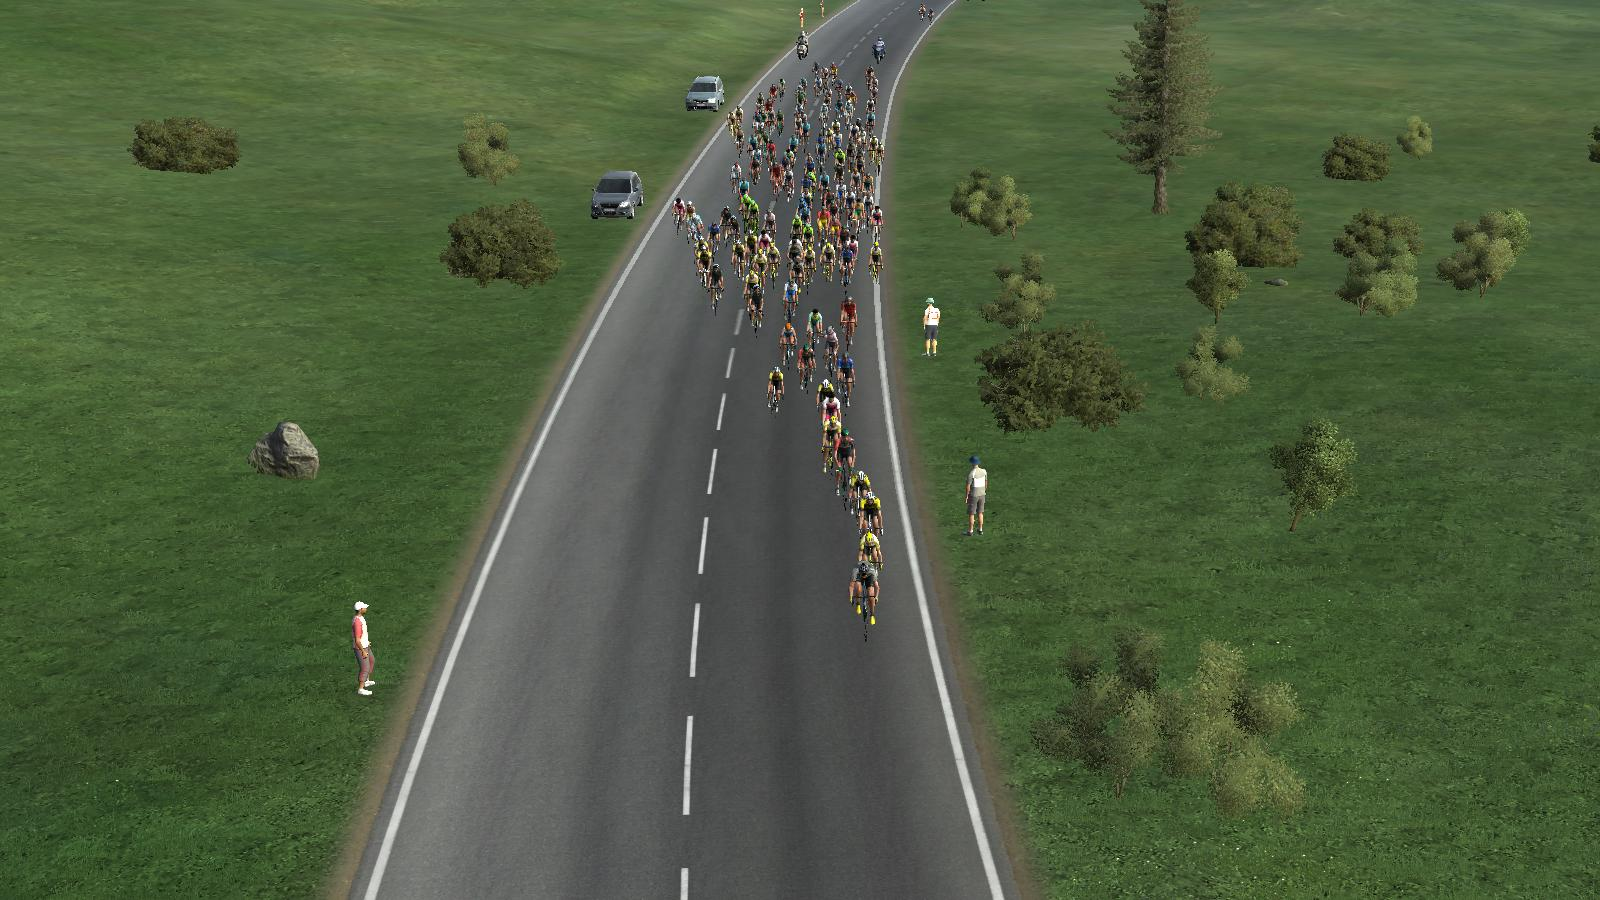 pcmdaily.com/images/mg/2019/Races/PTHC/Rheden/10.jpg